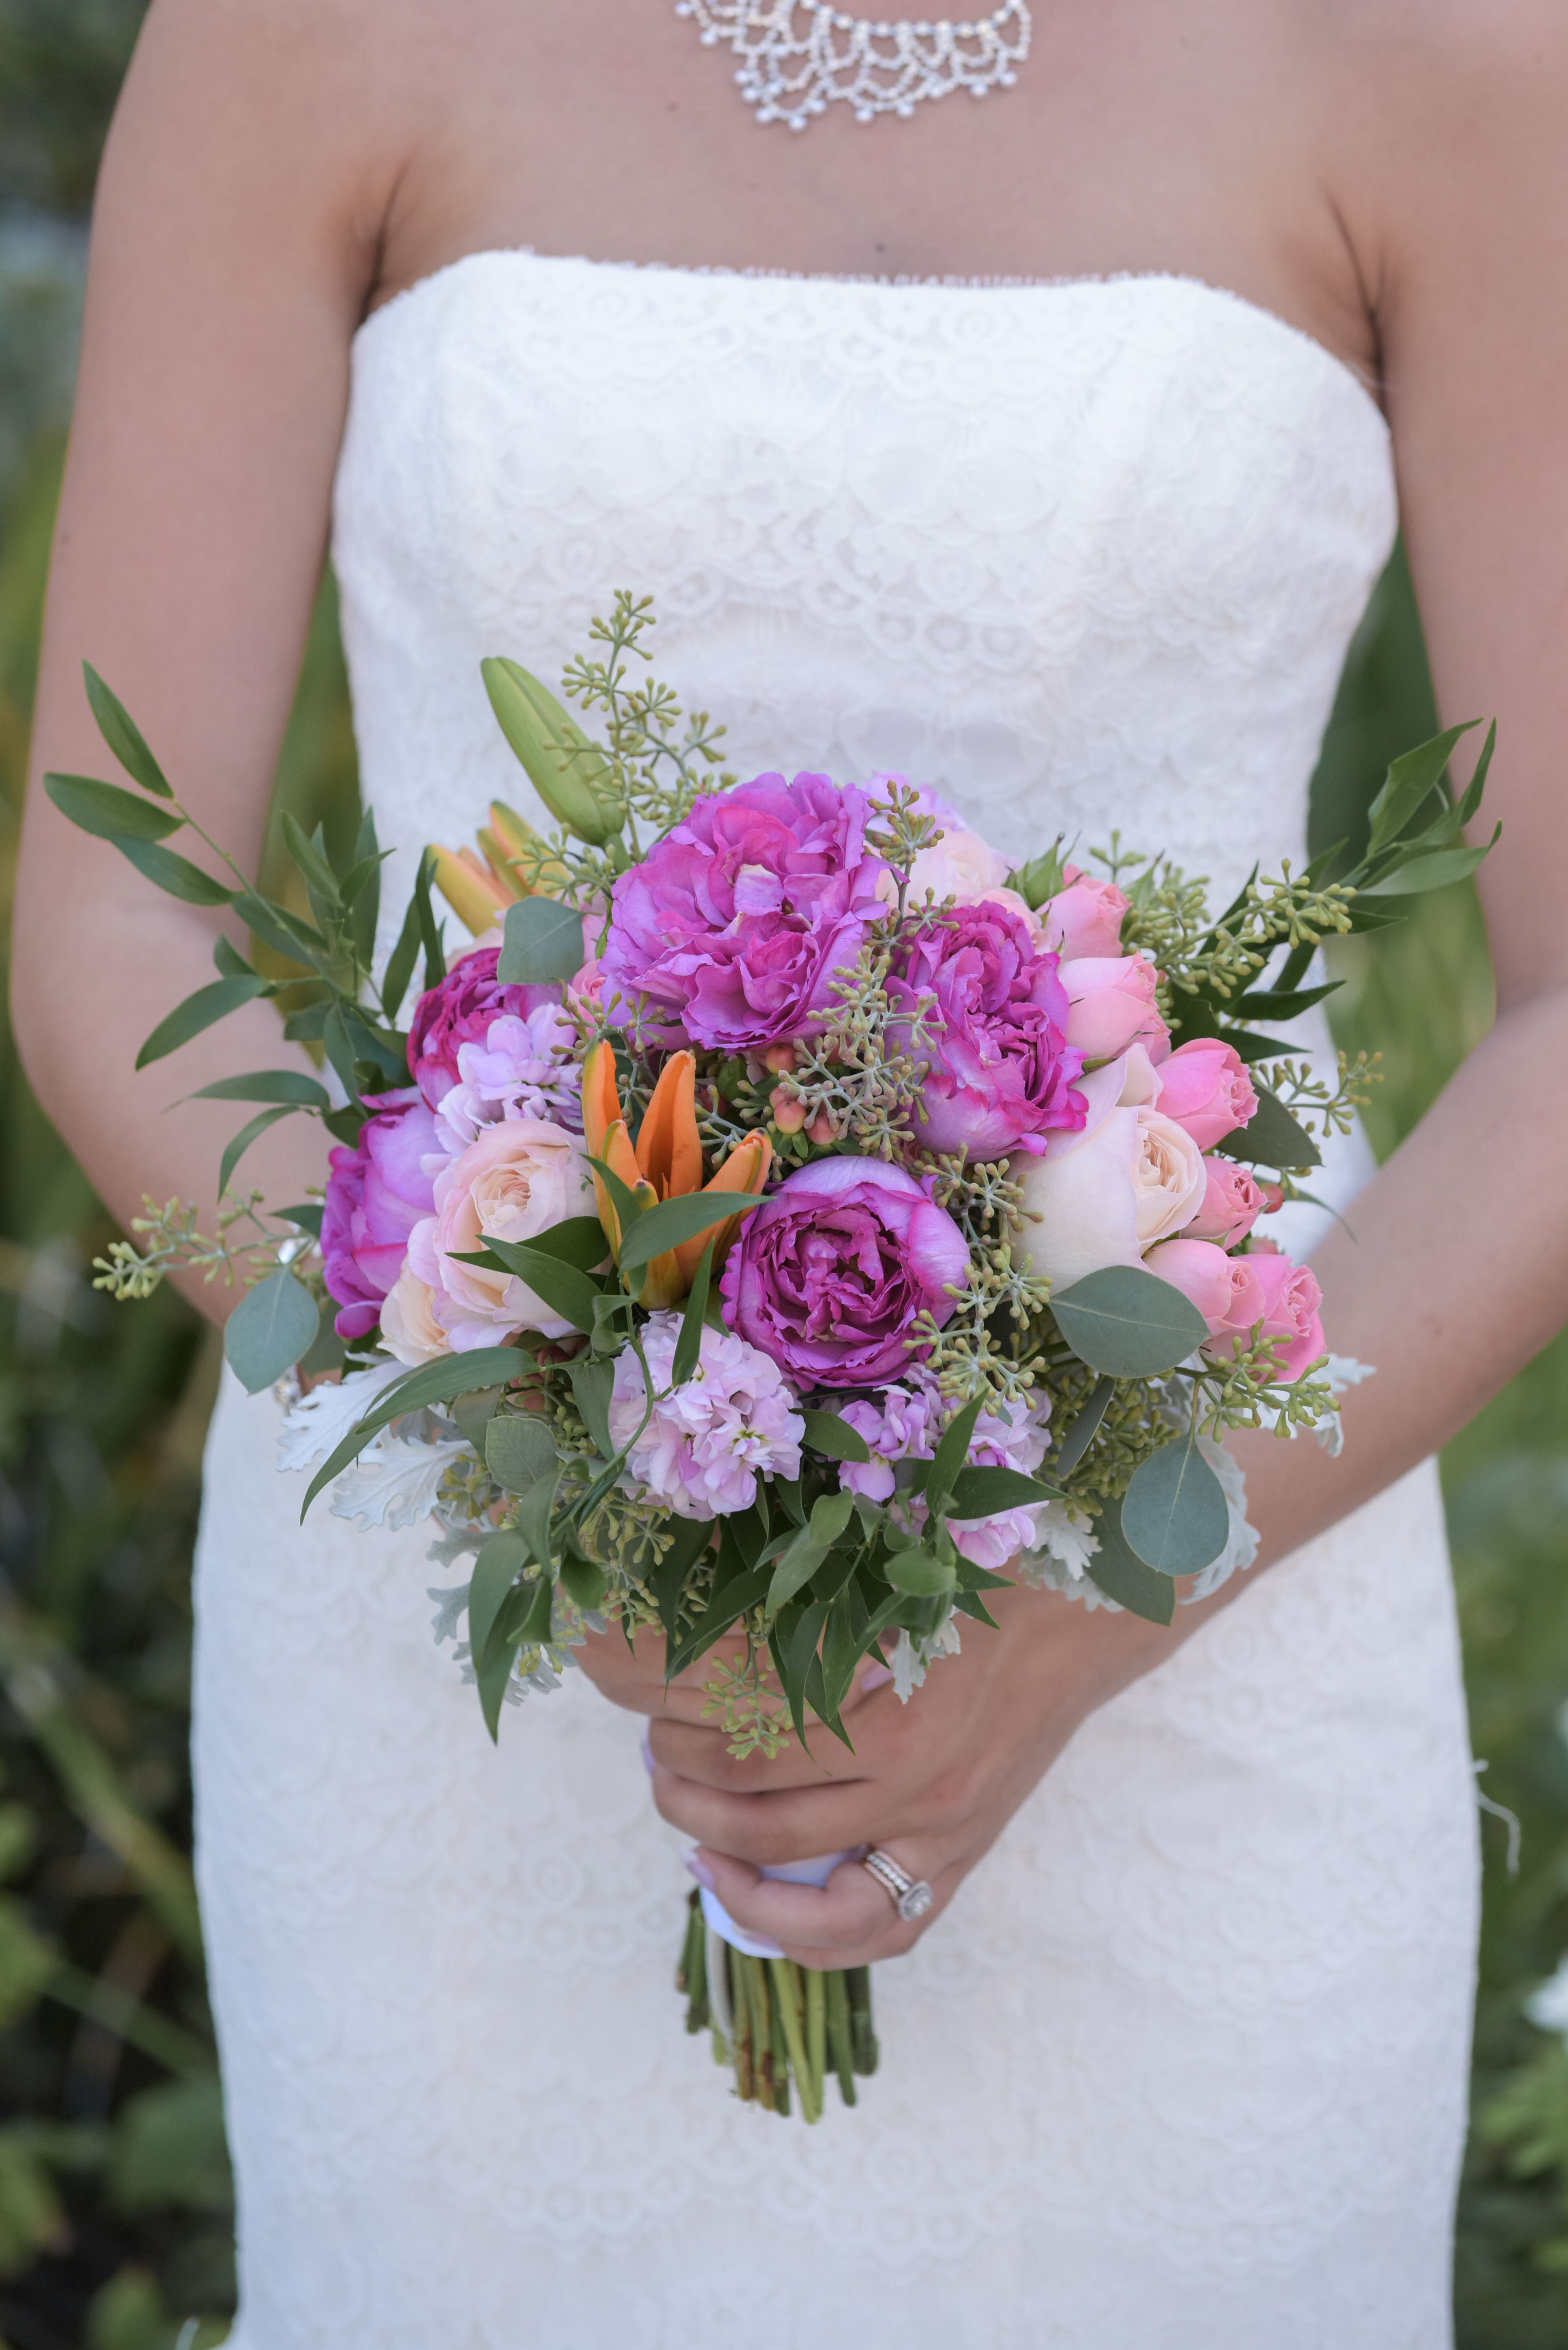 Freshly Picked Bridal Bouquet With Pink And Greenery Floral Design